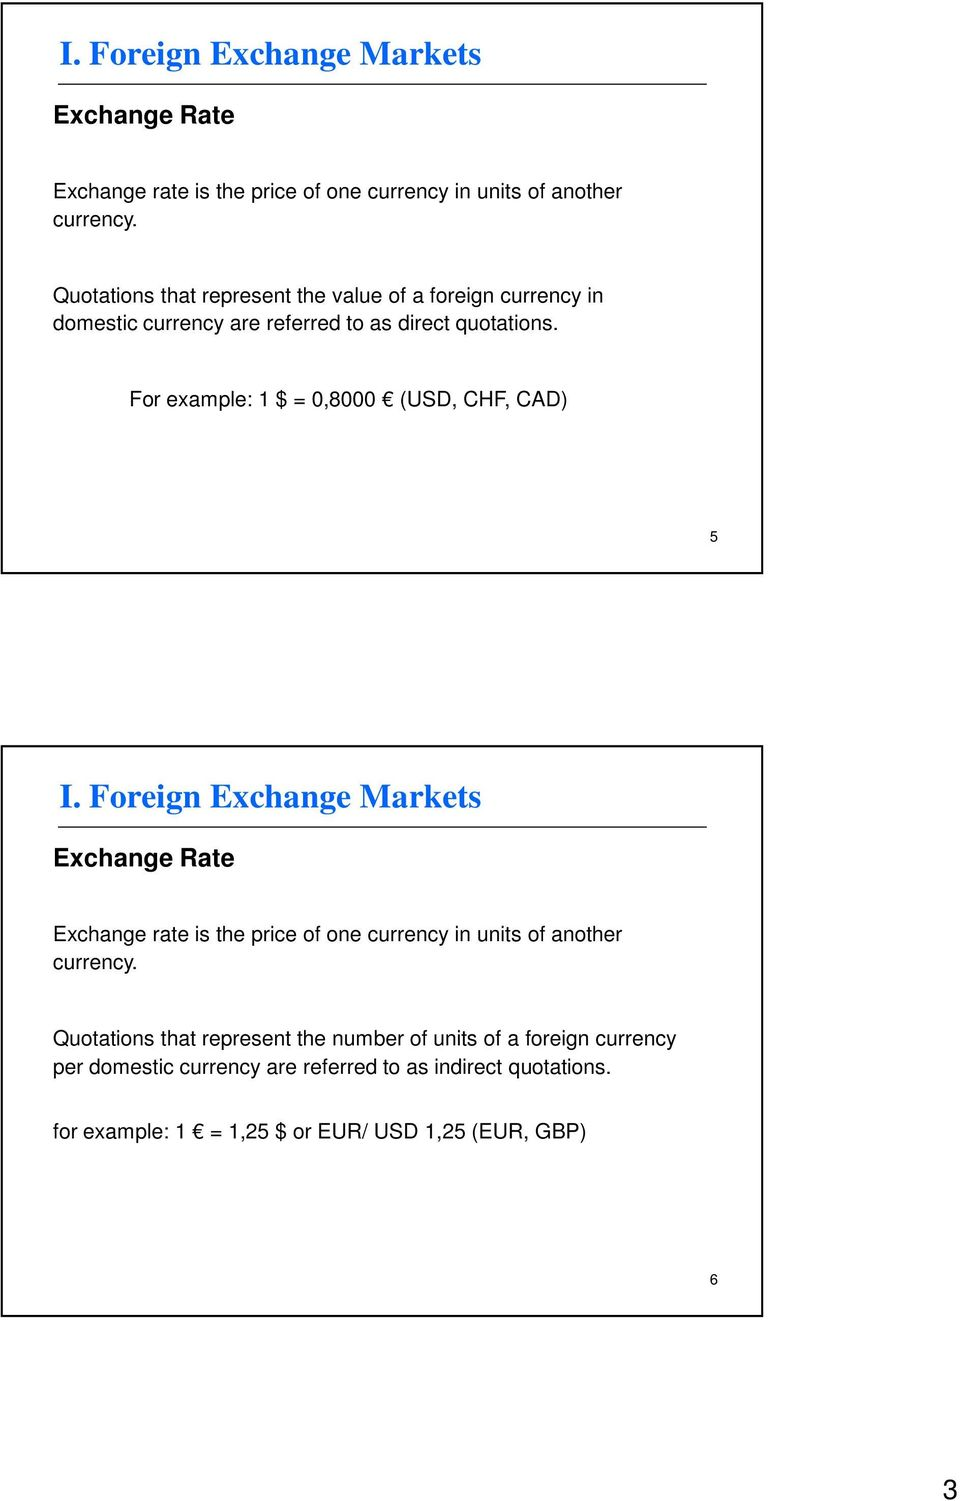 For example: 1 $ = 0,8000 (USD, CHF, CAD) 5  Quotations that represent the number of units of a foreign currency per domestic